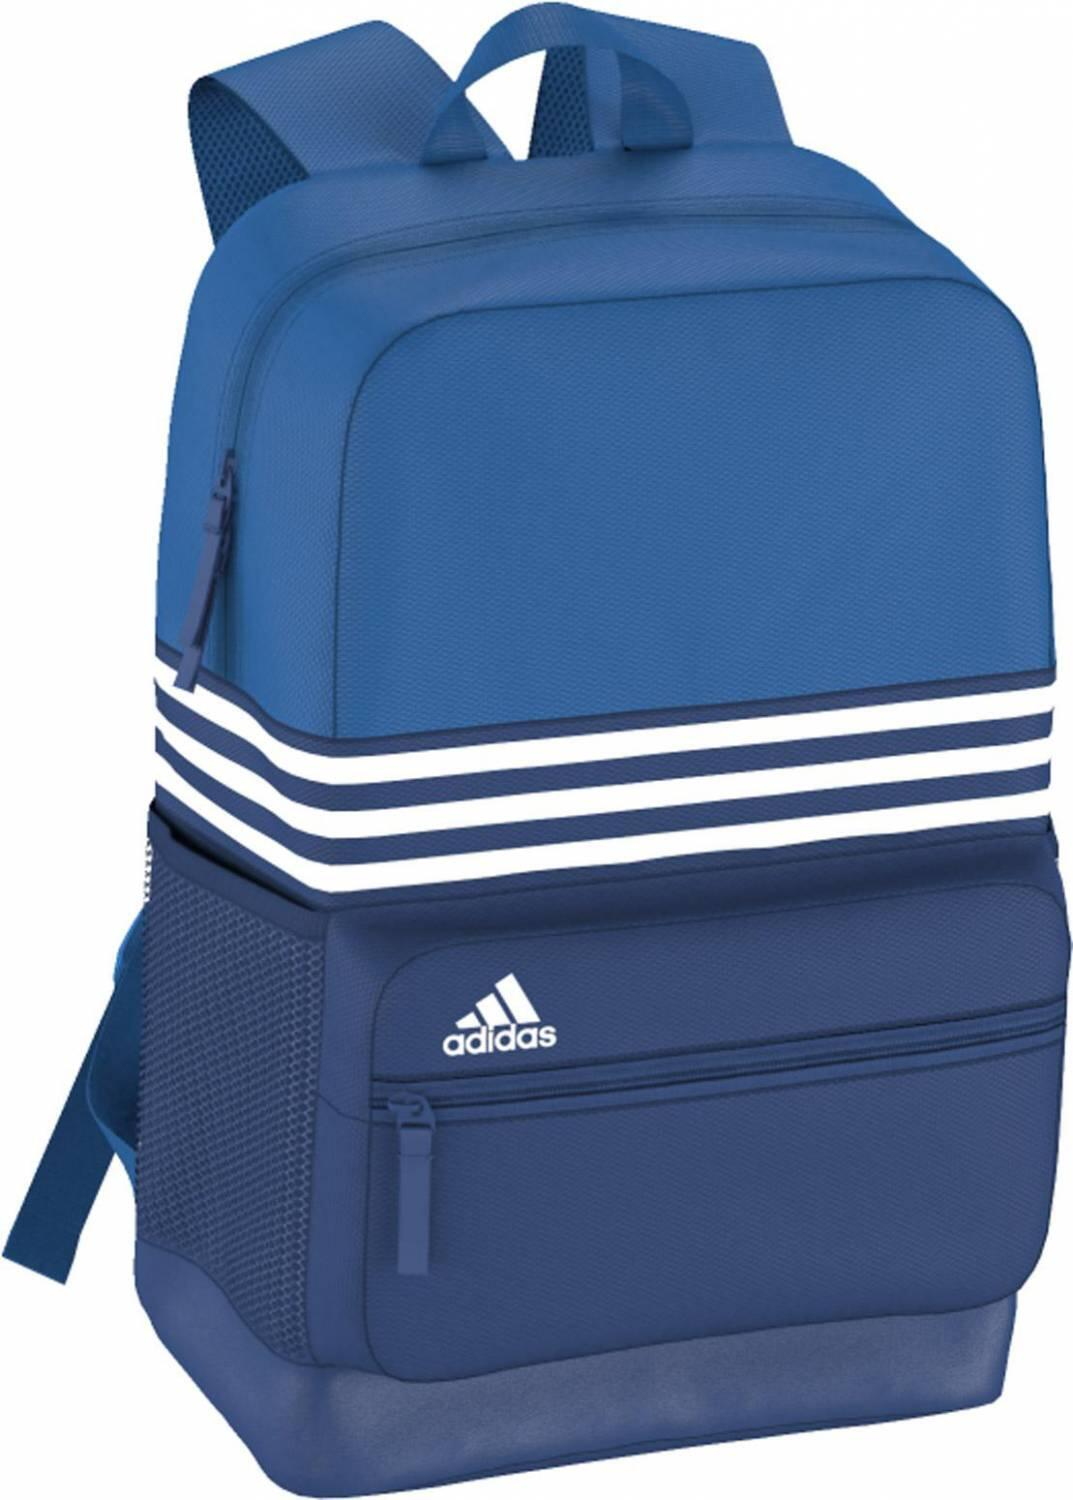 adidas-sports-backpack-3s-stadtrucksack-farbe-eqt-blue-s16-white-shock-blue-s16-